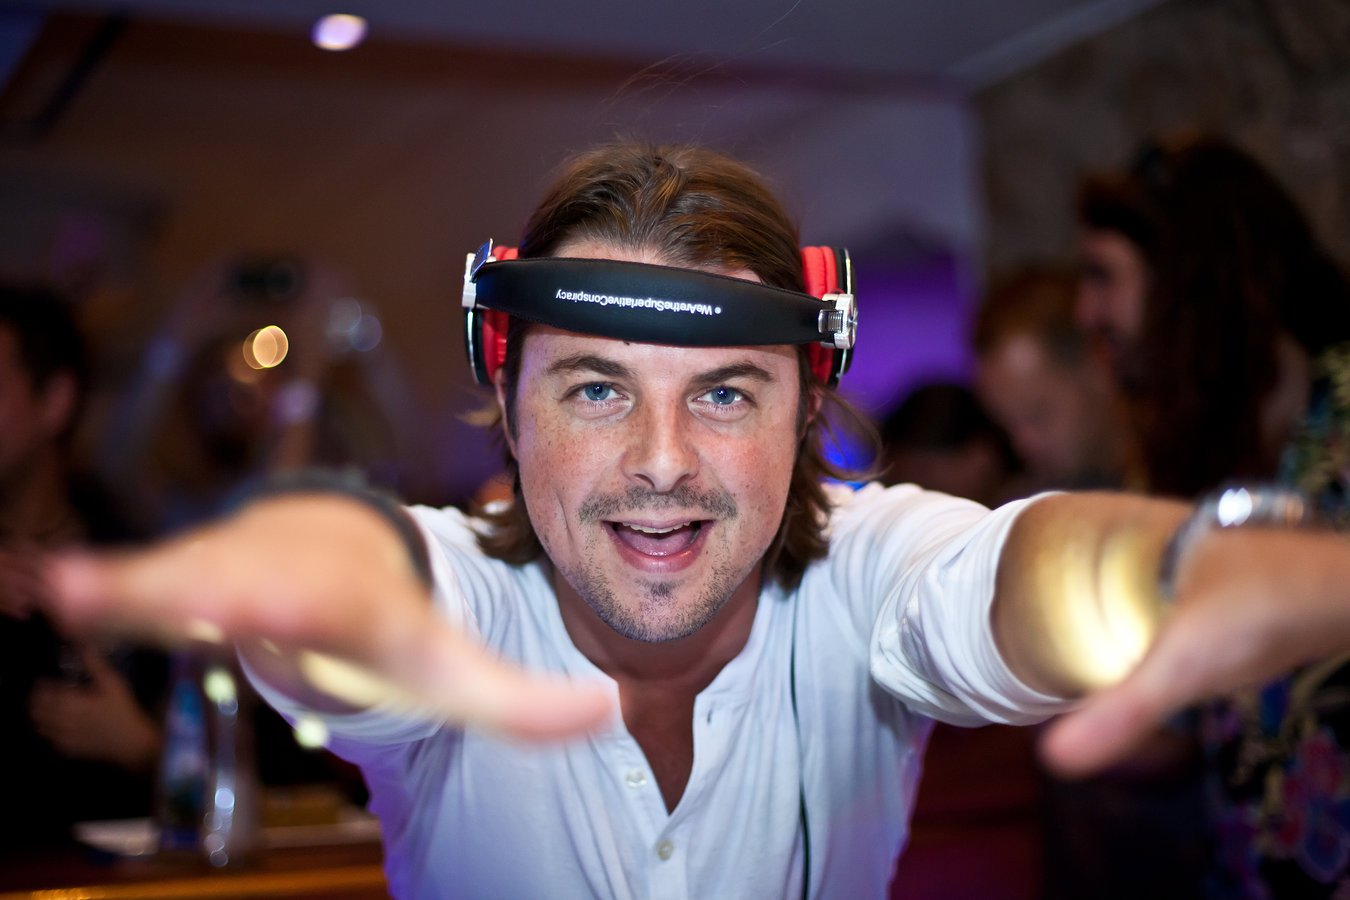 Axwell (Swedish House Mafia member): Part of Discography (Jetlag, Mambana, OXL) (48 релизов) - 2001-2010, MP3 (tracks, image+cue), VBR kbps / 192-320 kbps